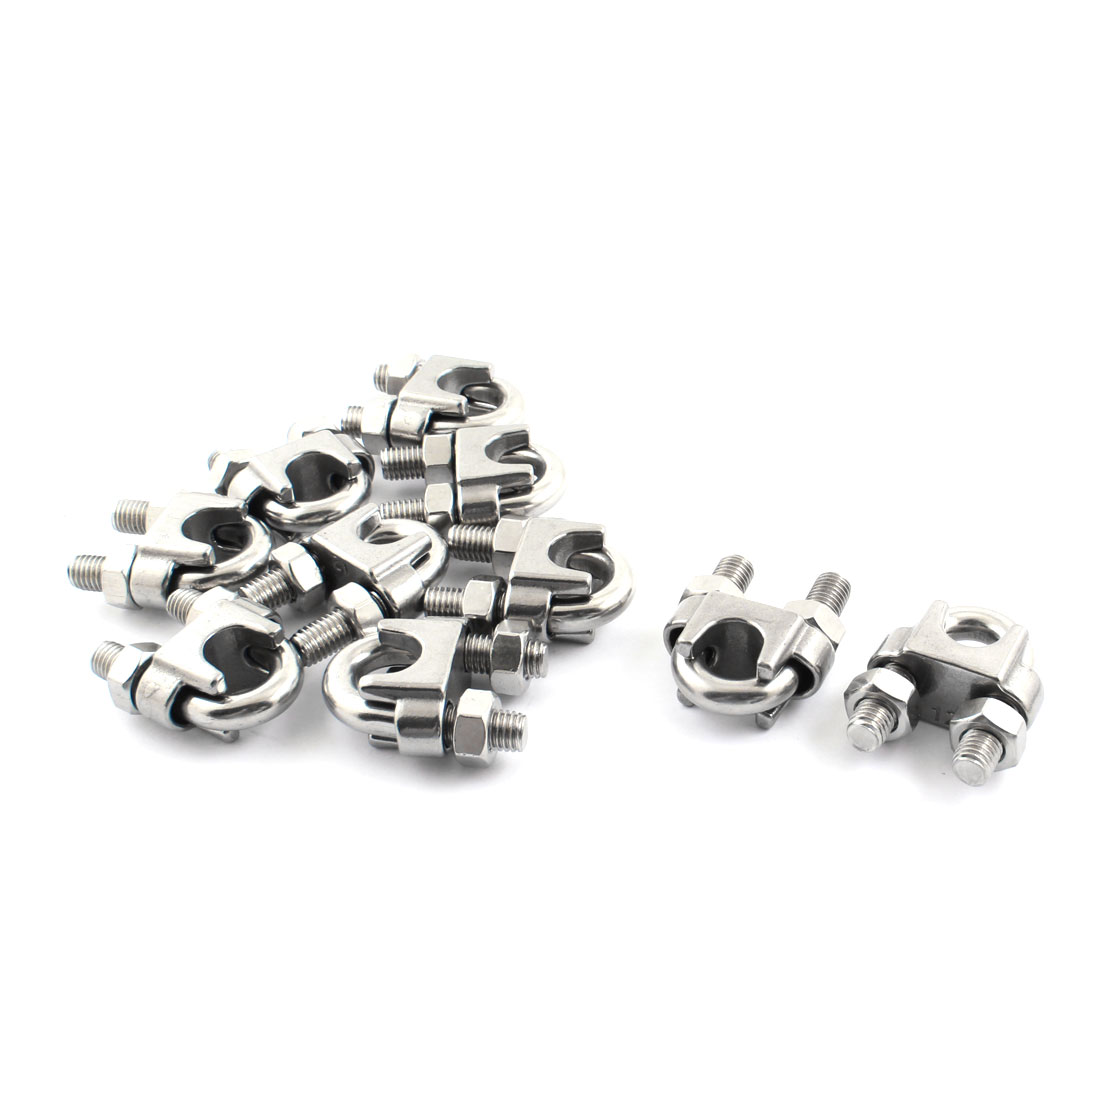 "10pcs Stainless Steel Cable Clip Saddle Clamp for 1/2"" 12mm Wire Ropes"